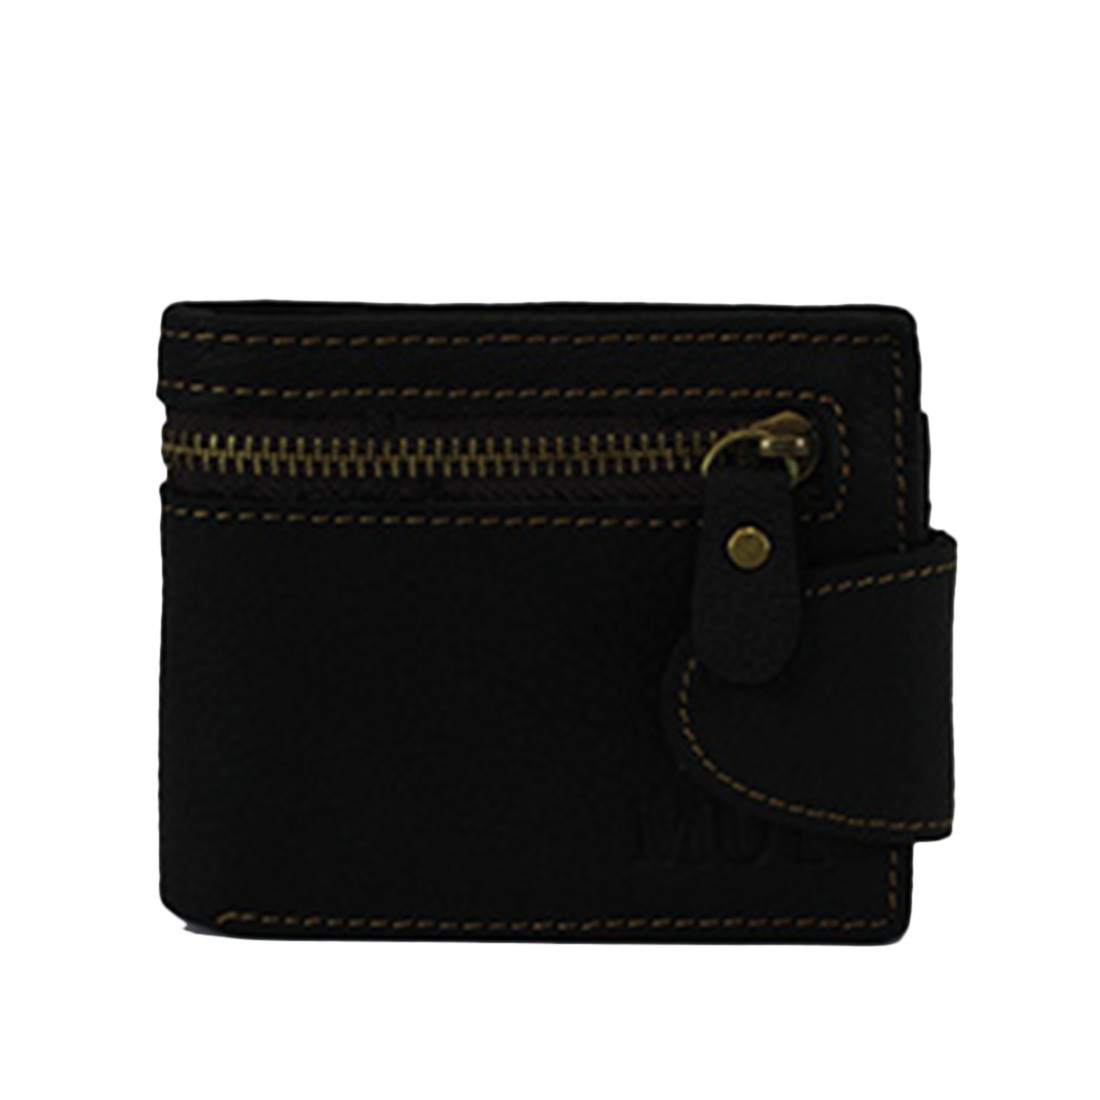 Real Leather- Zip design